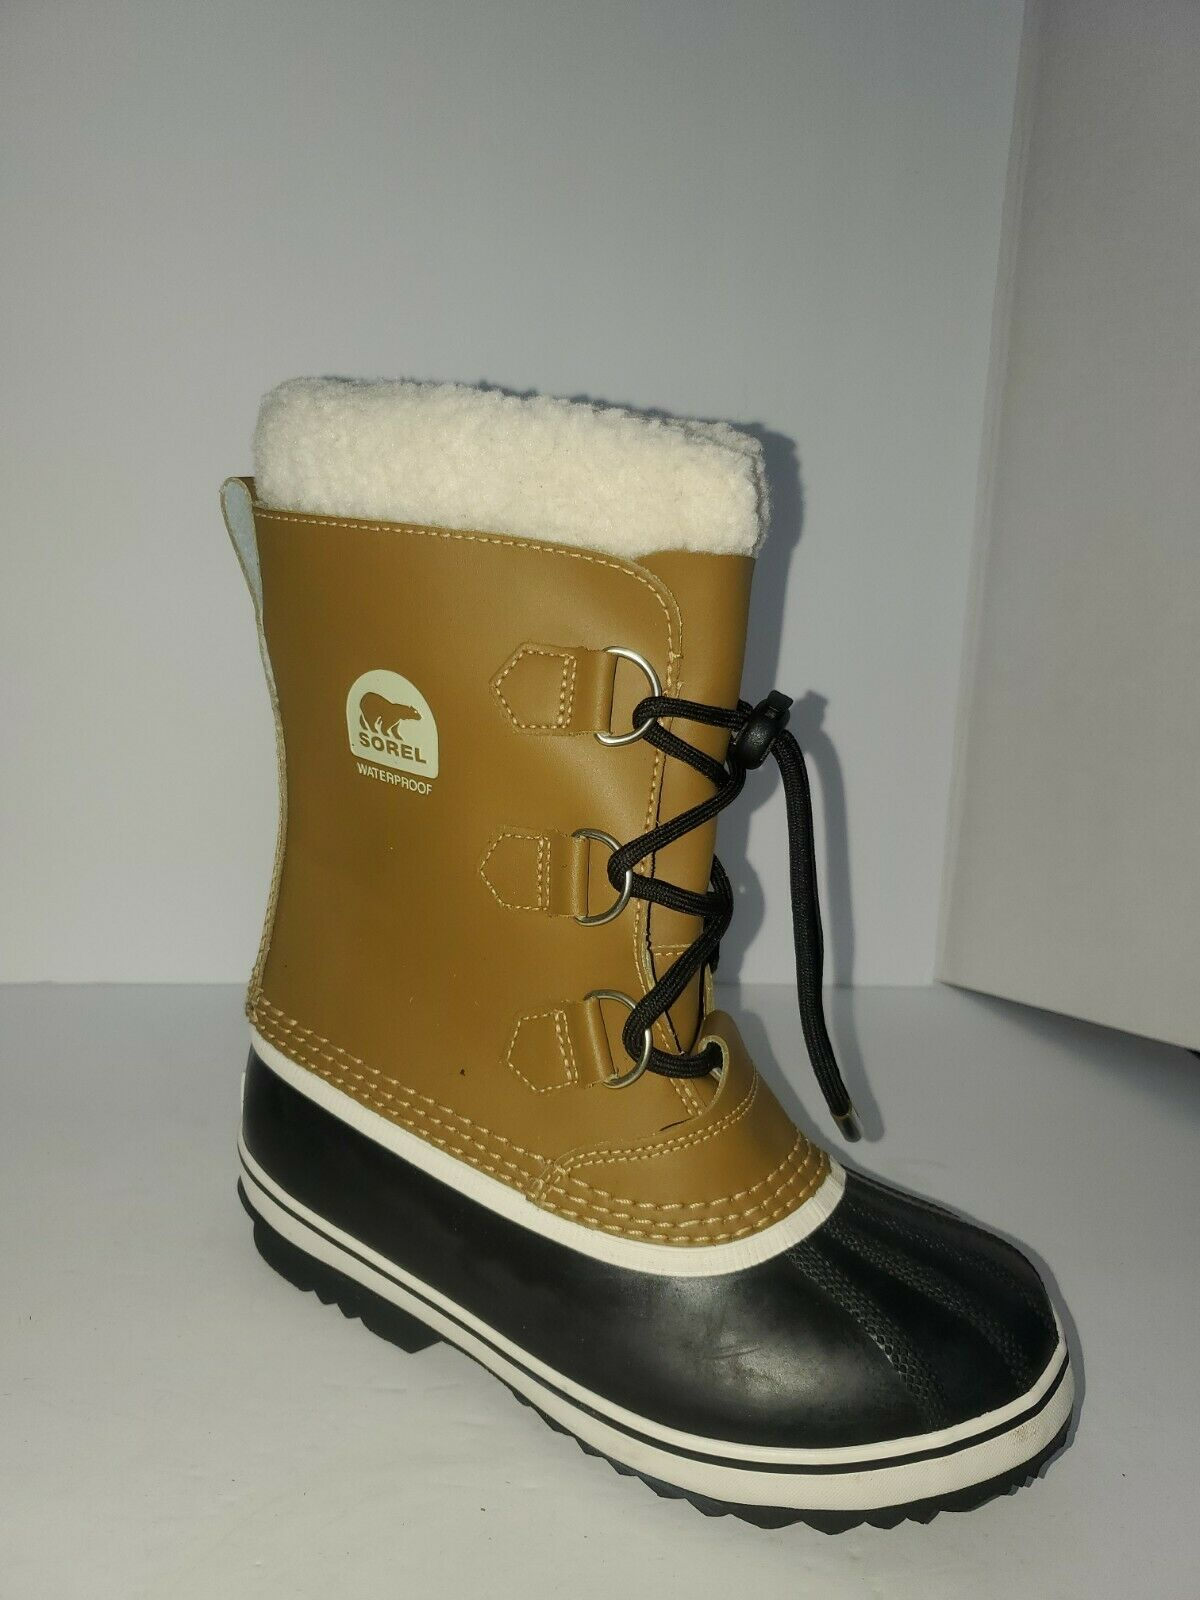 Primary image for SOREL CARIBOU Women's Leather Winter Snow Waterproof Boots SIZE 4